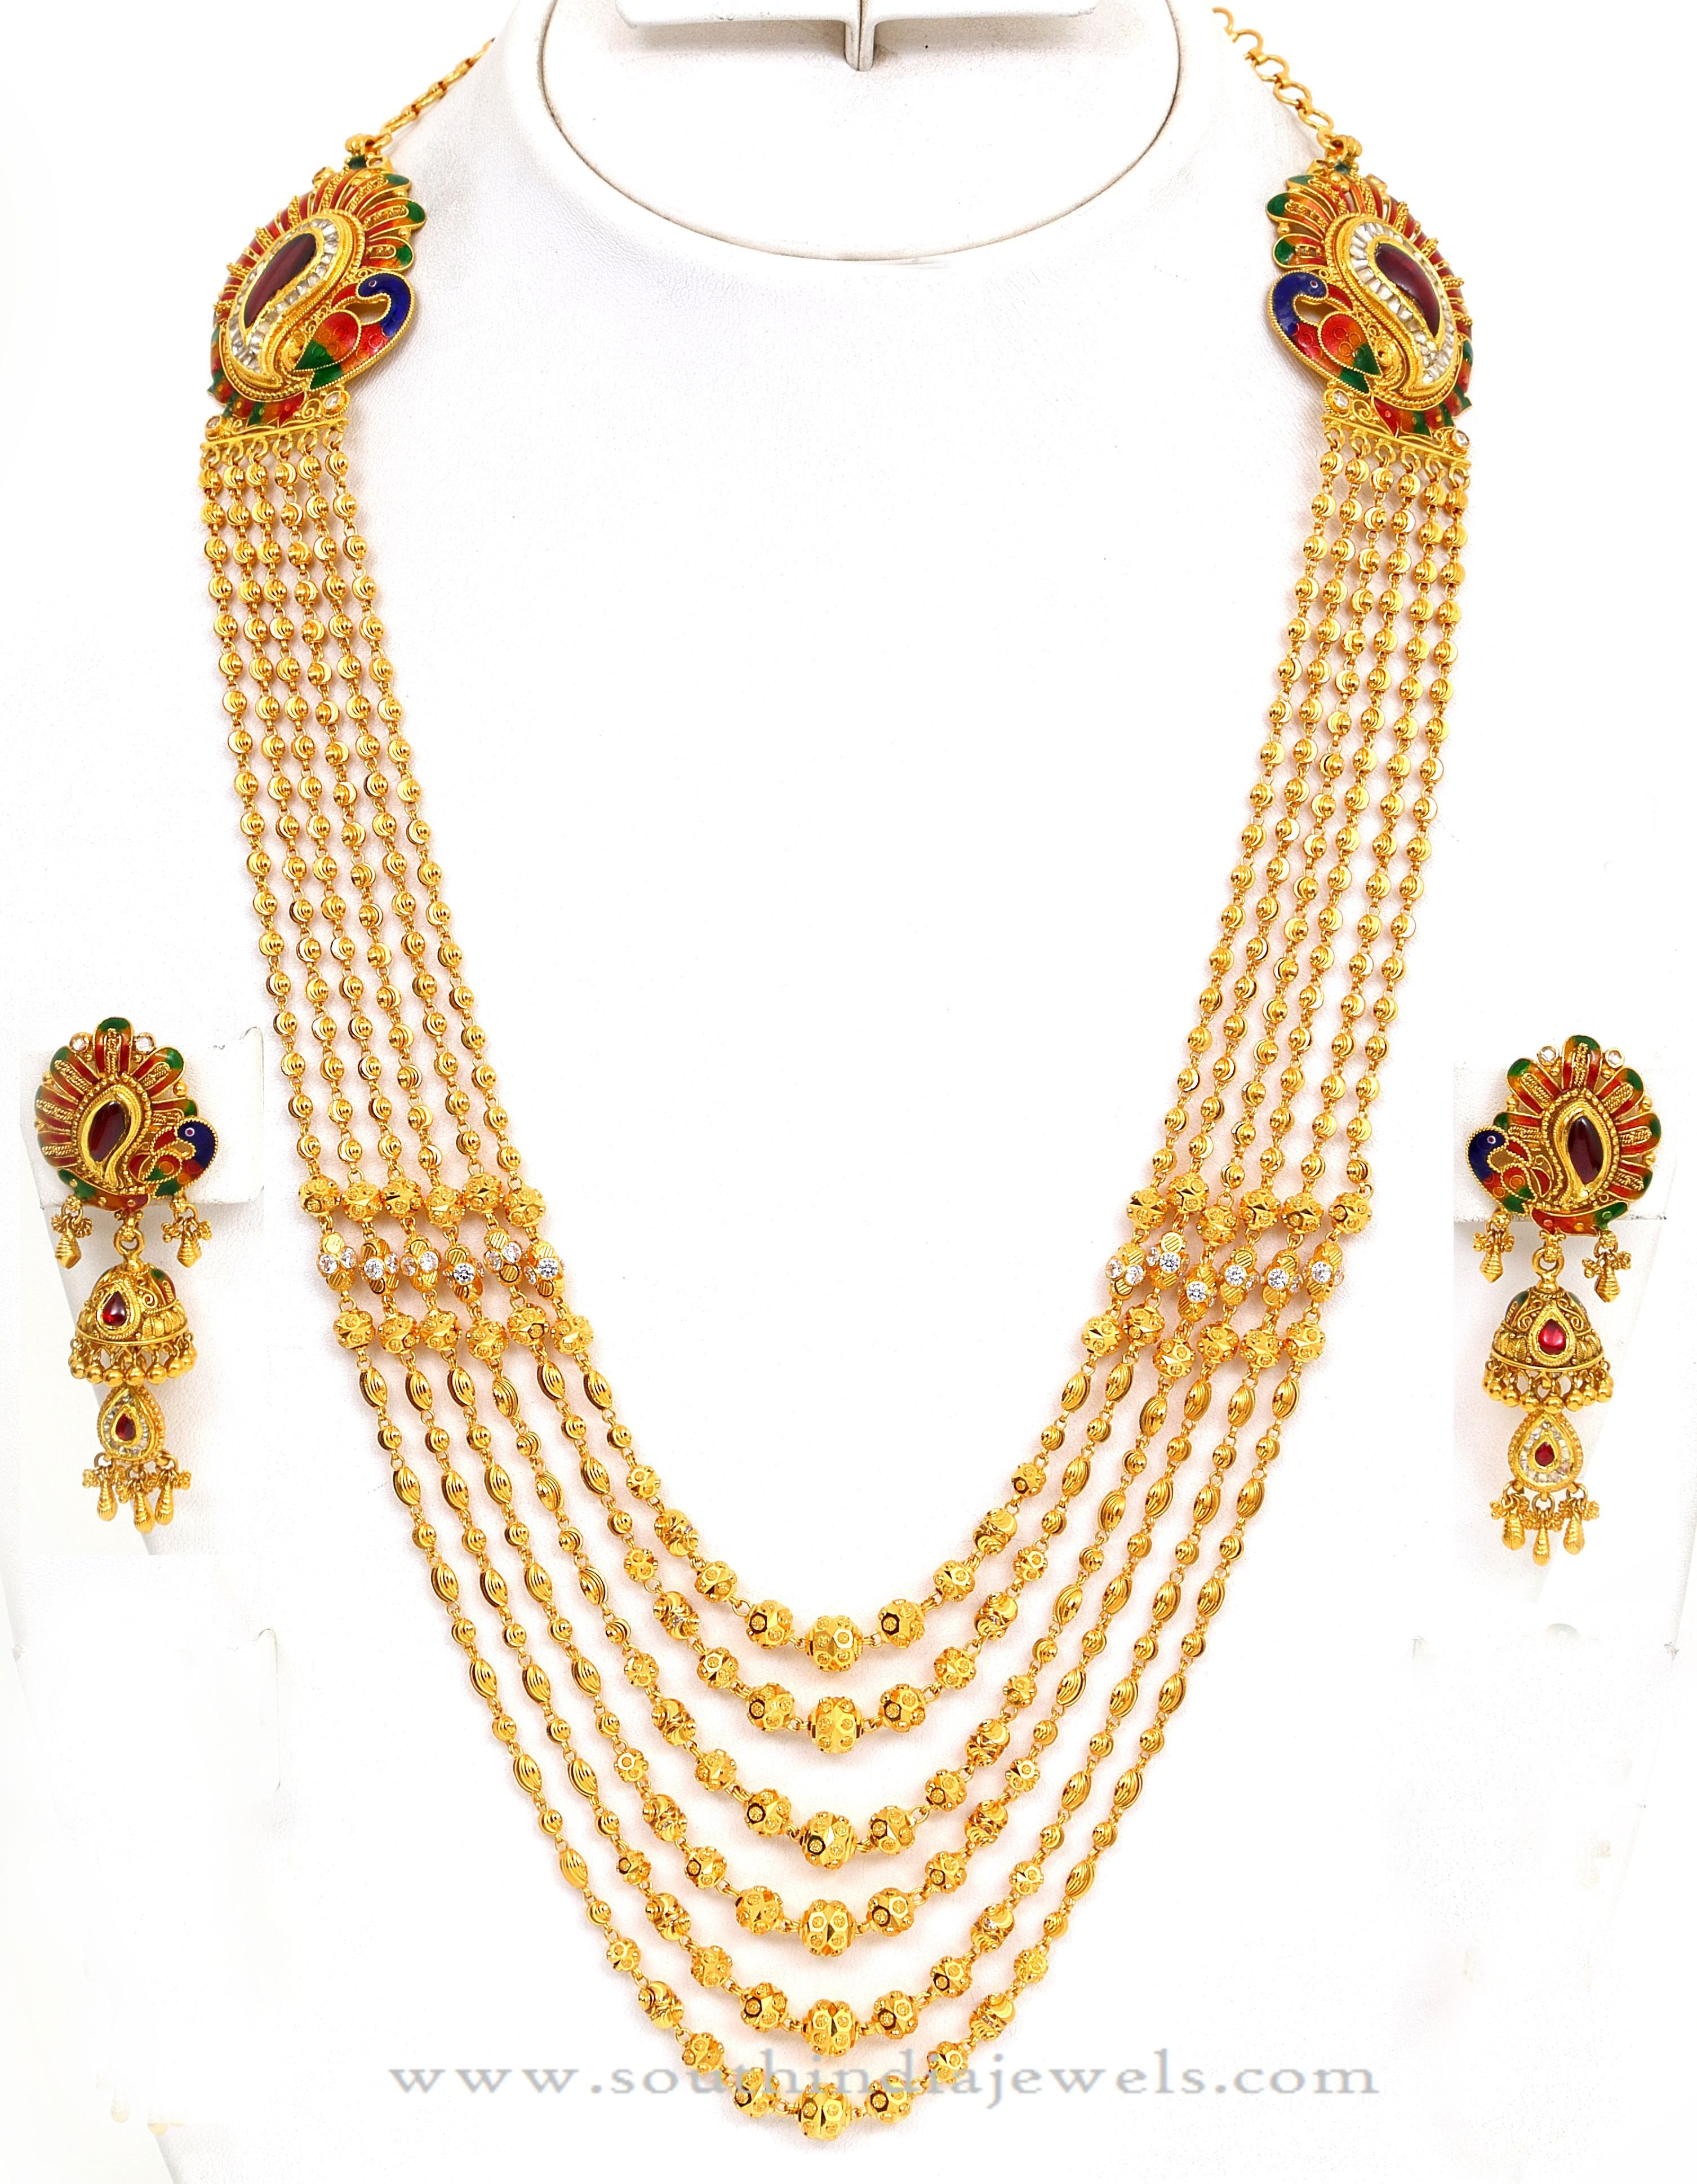 Latest gold necklace designs in grams pachi necklace latest jewellery - Gold Gundala Haram Designs Latest Model Gold Gundala Harams Gold Gundala Haram With Side